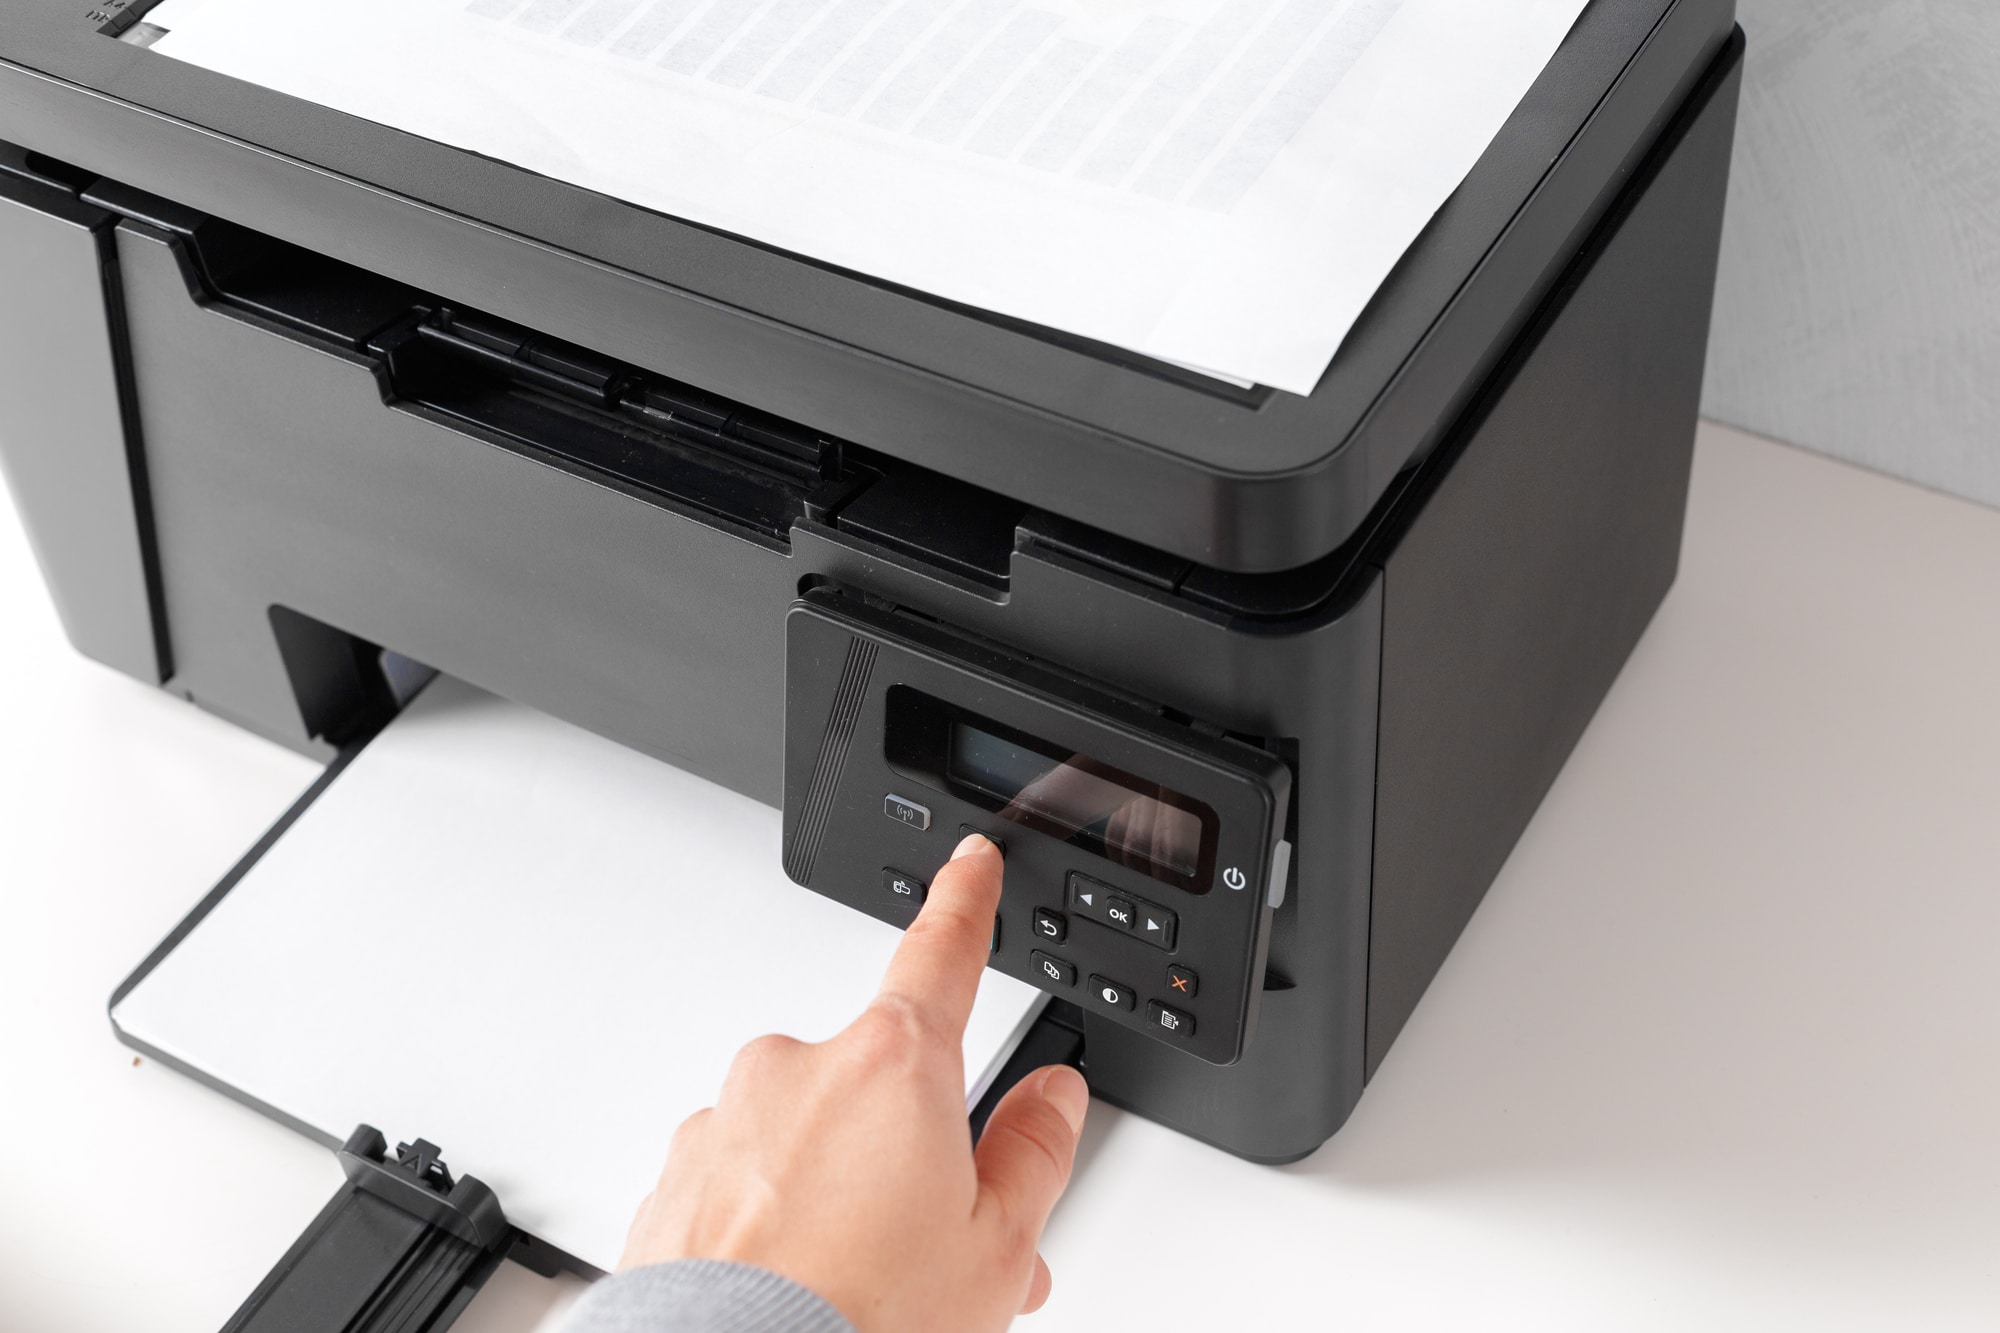 Printer on the table